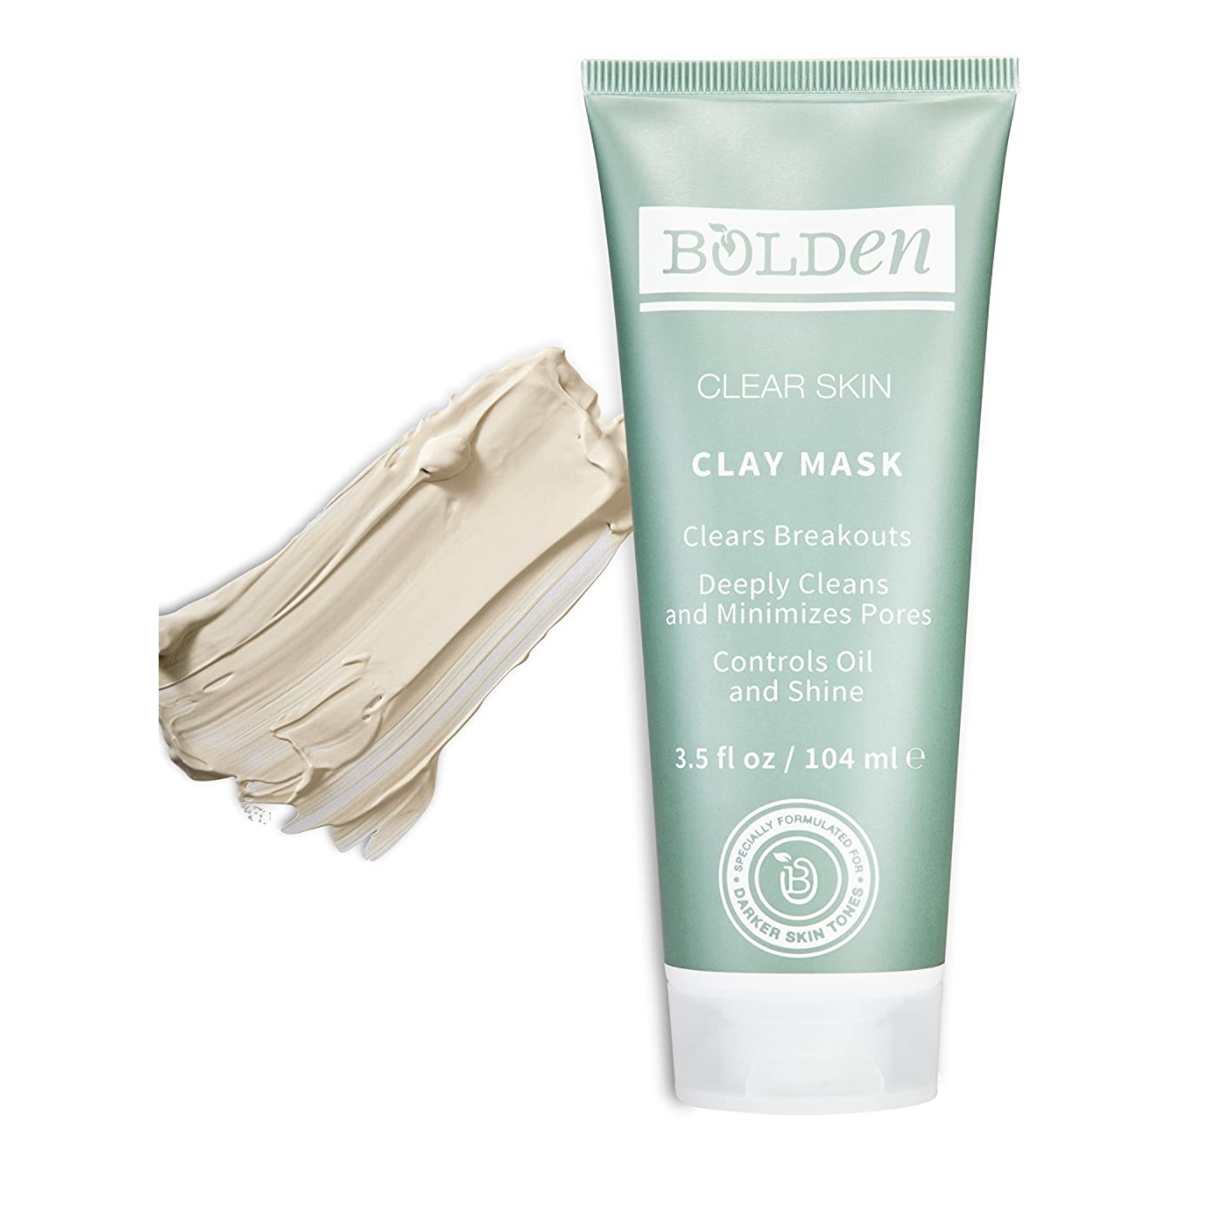 Bottle of Bolden clay mask with swatch of product next to it